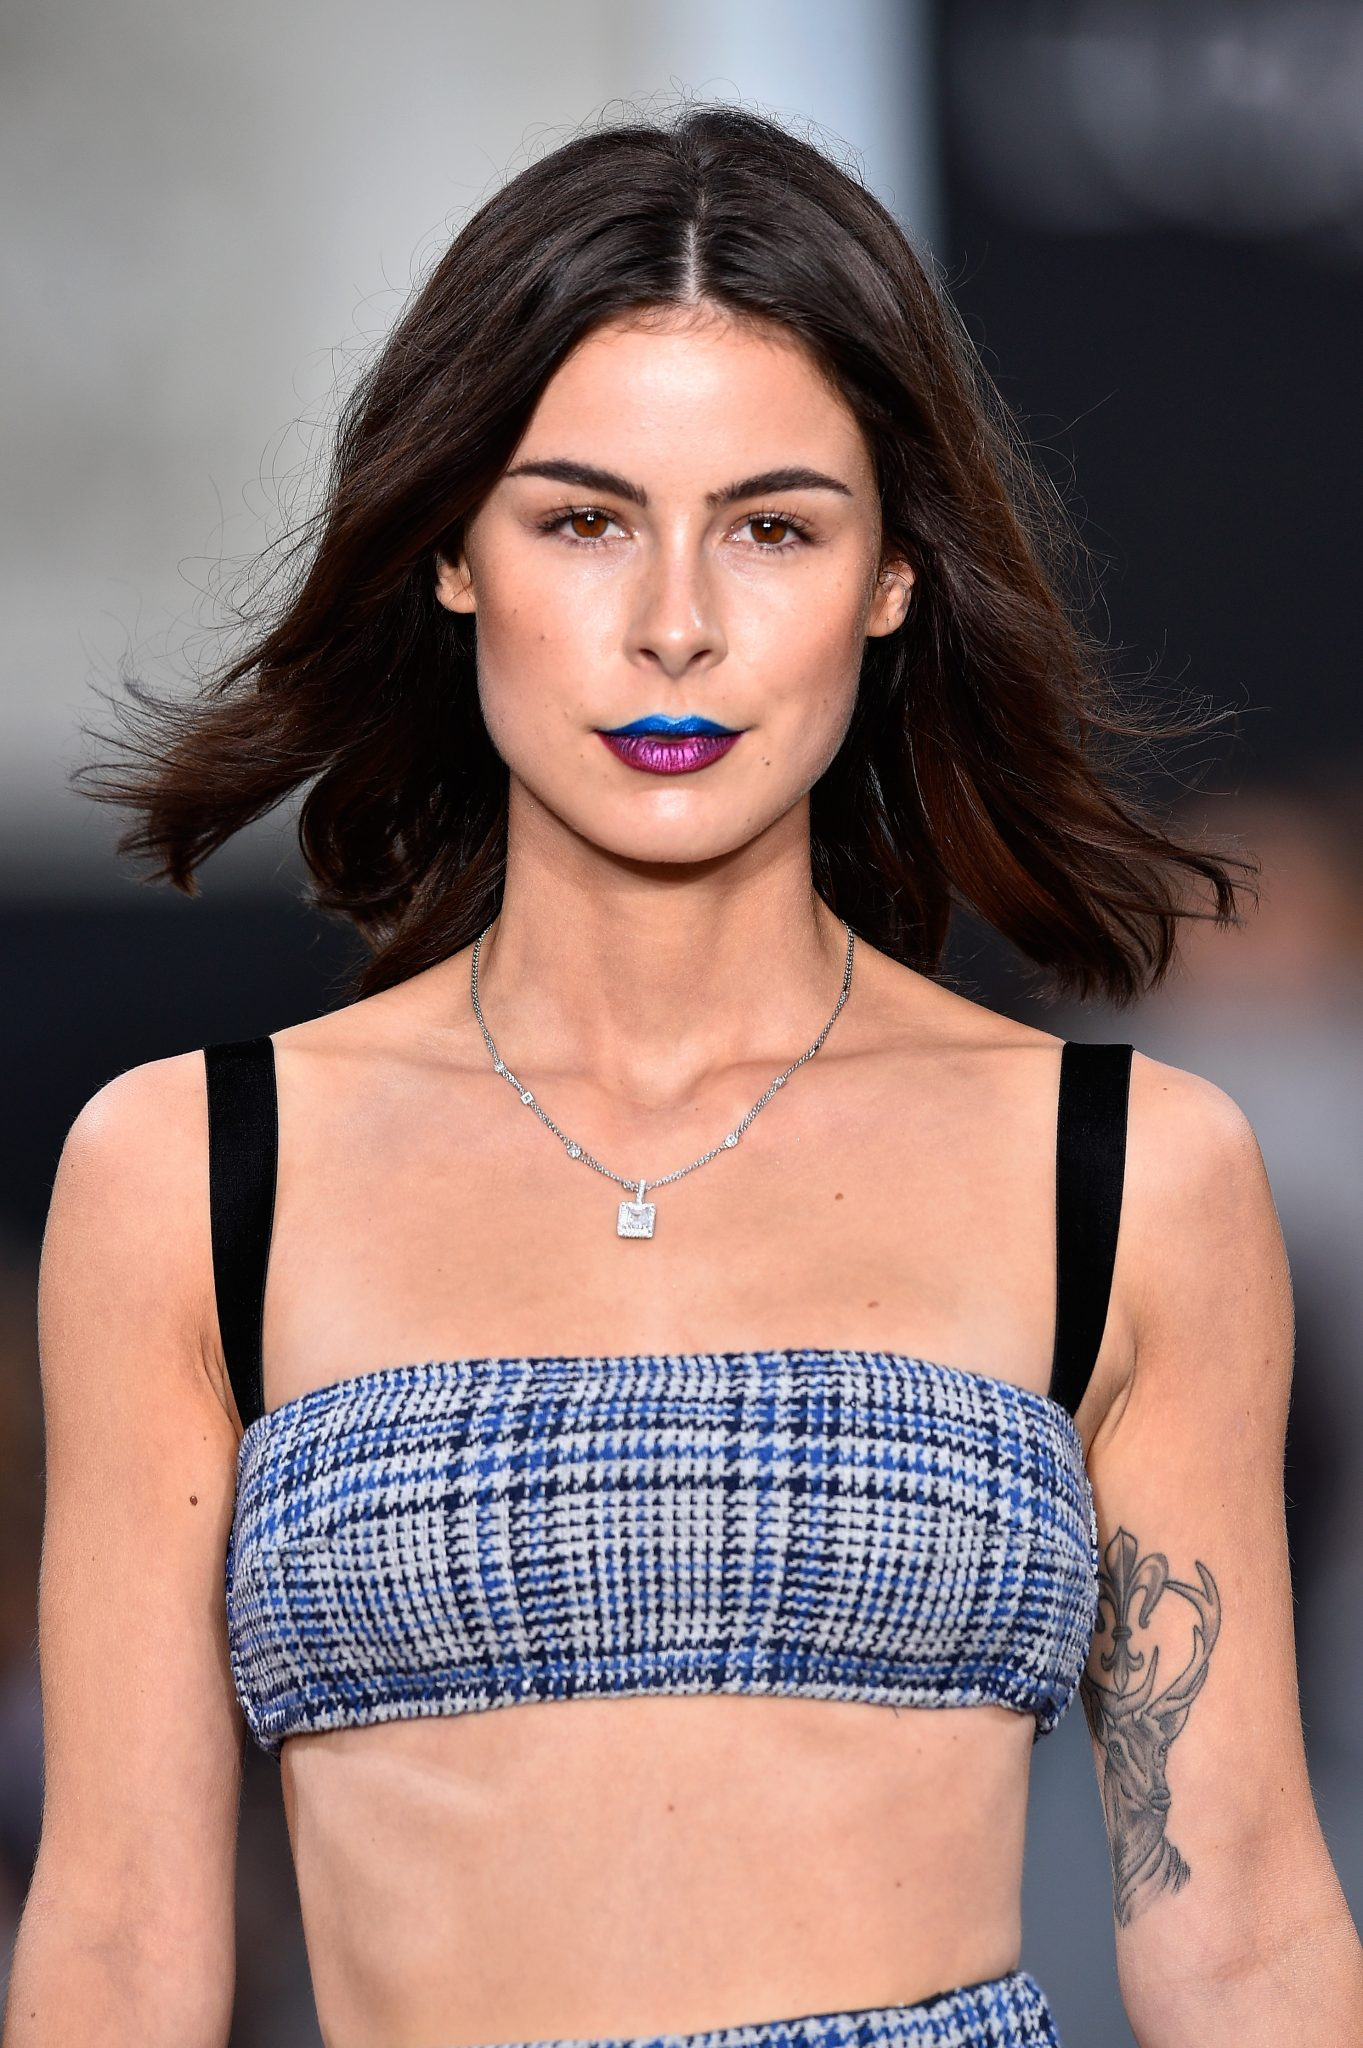 PARIS, FRANCE - OCTOBER 01: Lena Meyer Landrut walks the runway during Le Defile L'Oreal Paris as part of Paris Fashion Week Womenswear Spring/Summer 2018 at Avenue Des Champs Elysees on October 1, 2017 in Paris, France. (Photo by Kristy Sparow/Getty Images for L'Oreal)